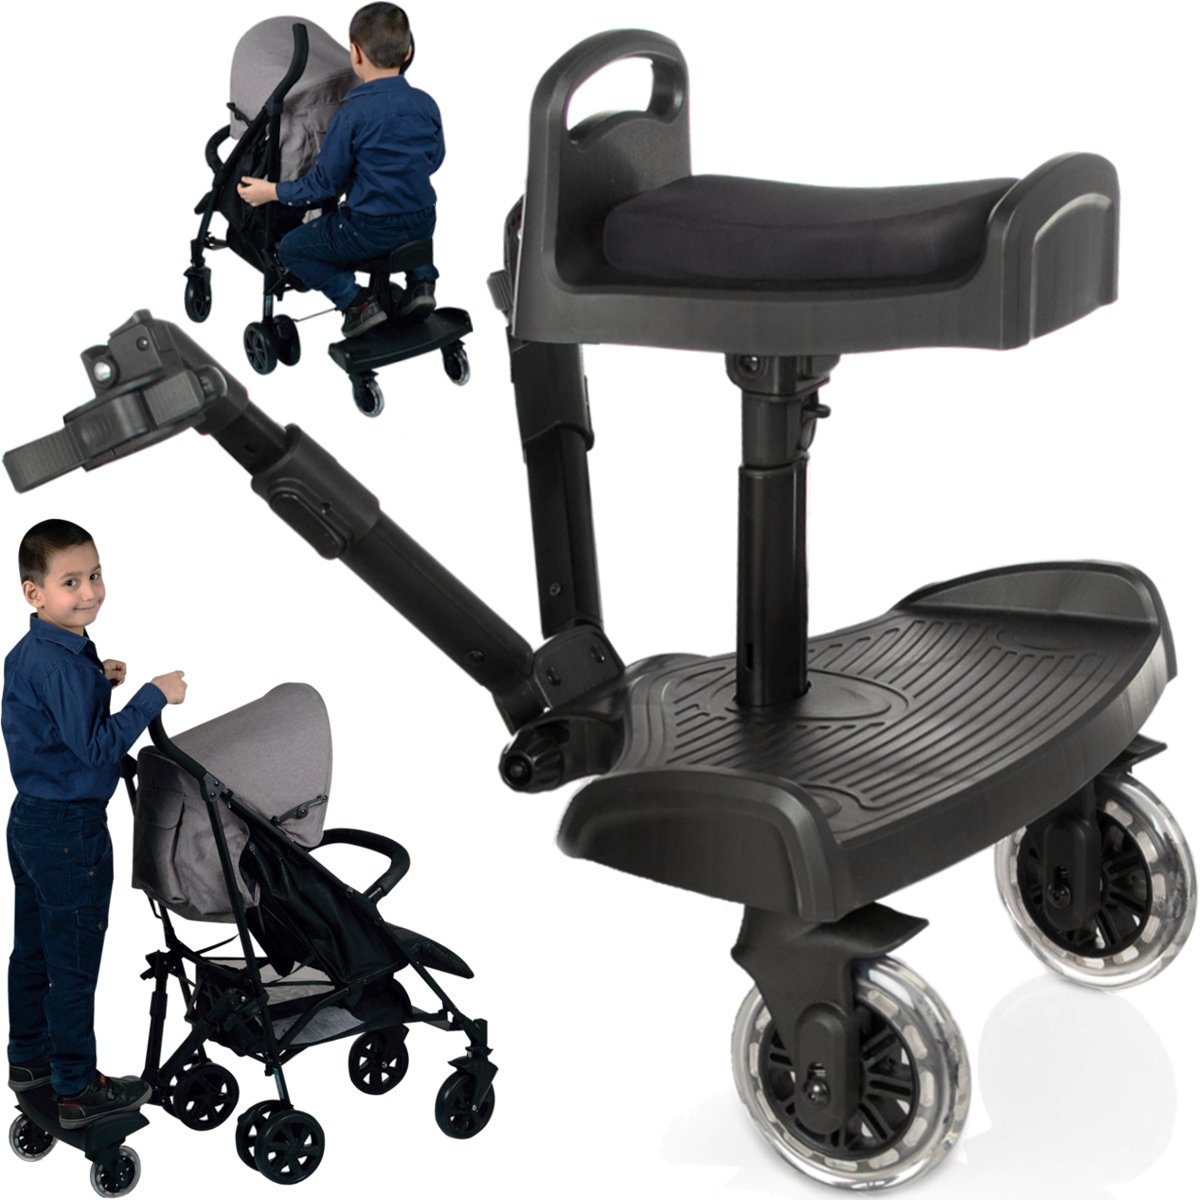 Kiddy Board / Buggy Ride-On Platform + Buggy Ride-On Seat for Buggy / Stoller / Jogger (till 20 kg) Stimo24